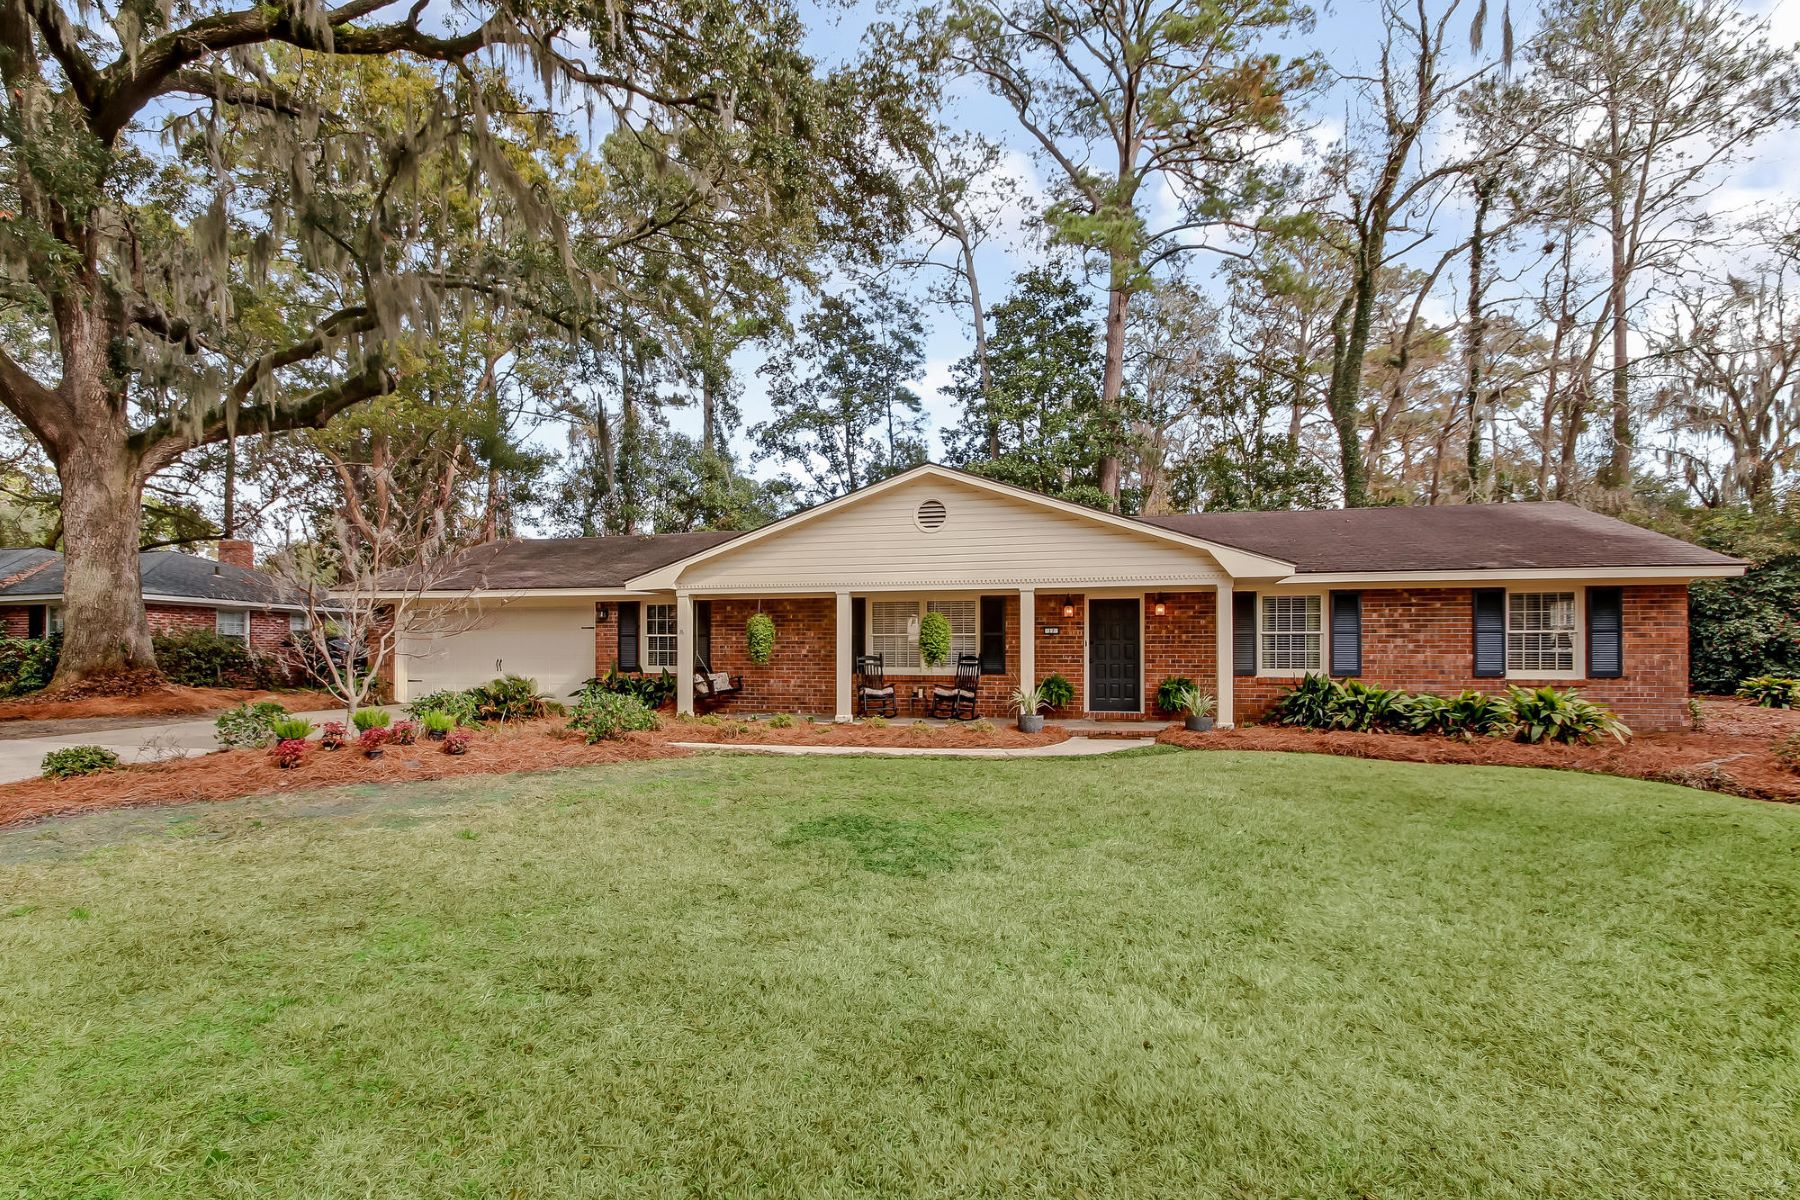 Single Family Home for Sale at 17 Raleigh Drive 17 Raleigh Dr Savannah, Georgia 31406 United States